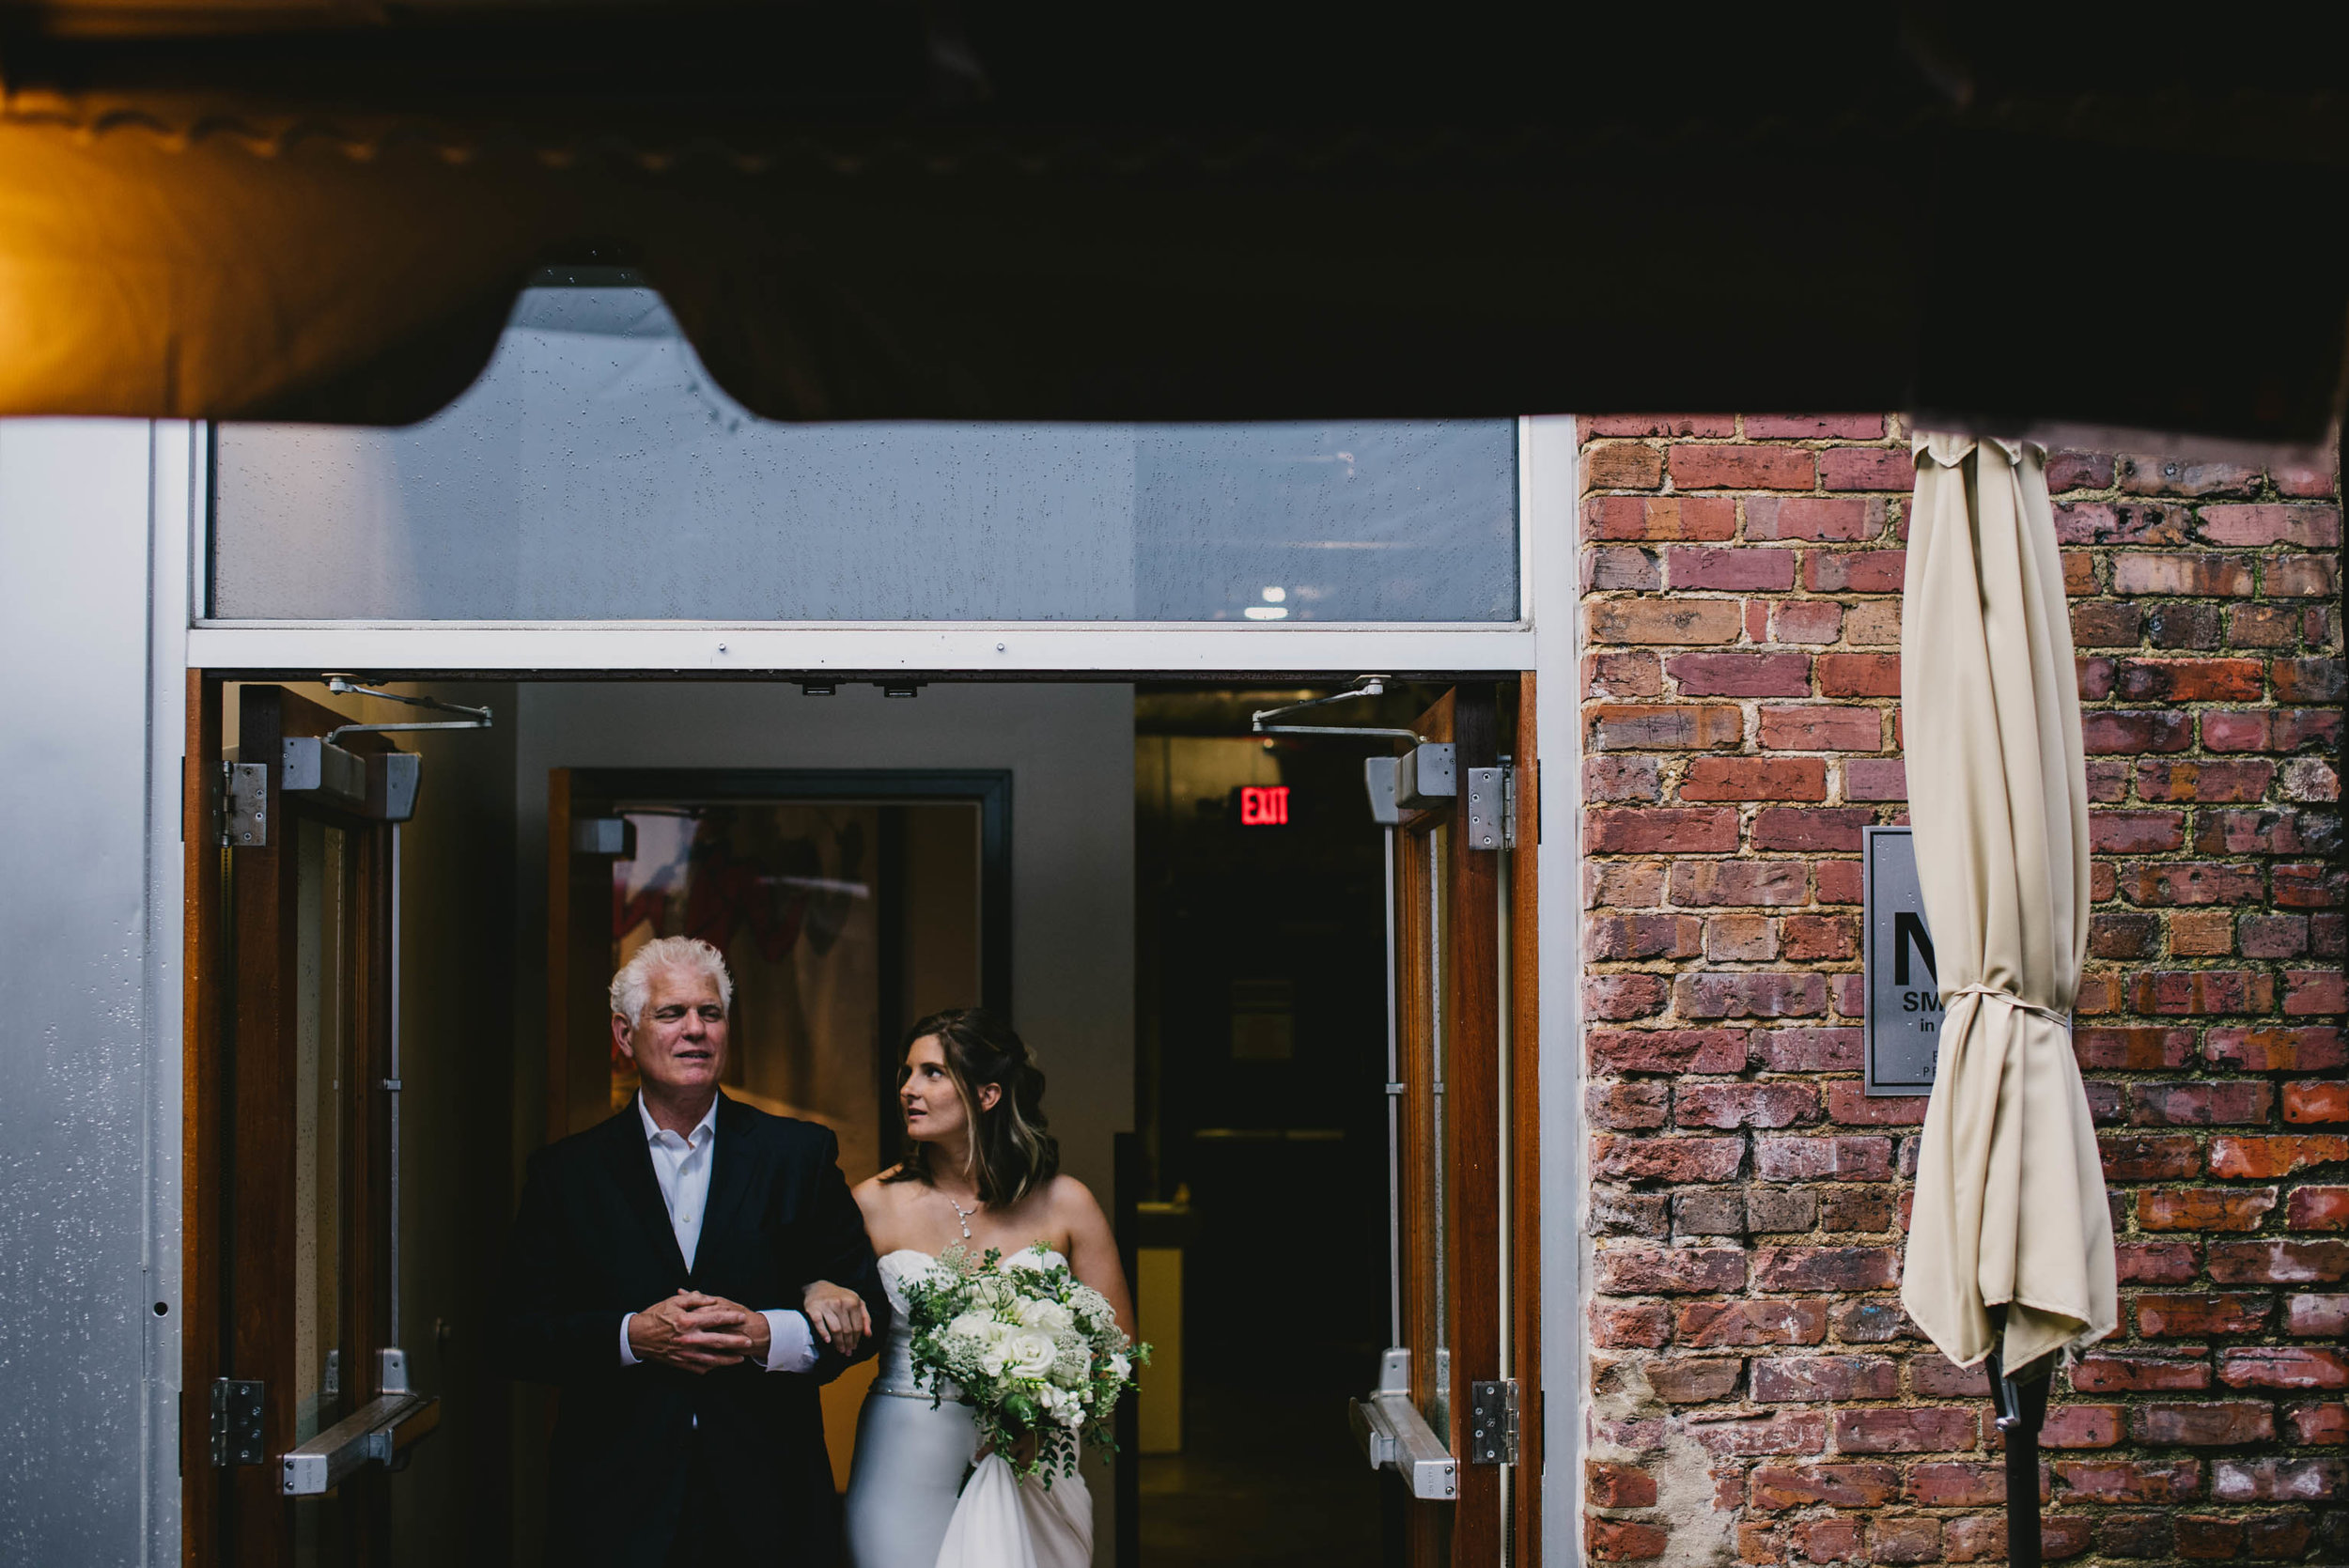 bride getting ready to walk down aisle with her father at her Jiddi Space and Courtyard Wedding at Sitti Restaurant